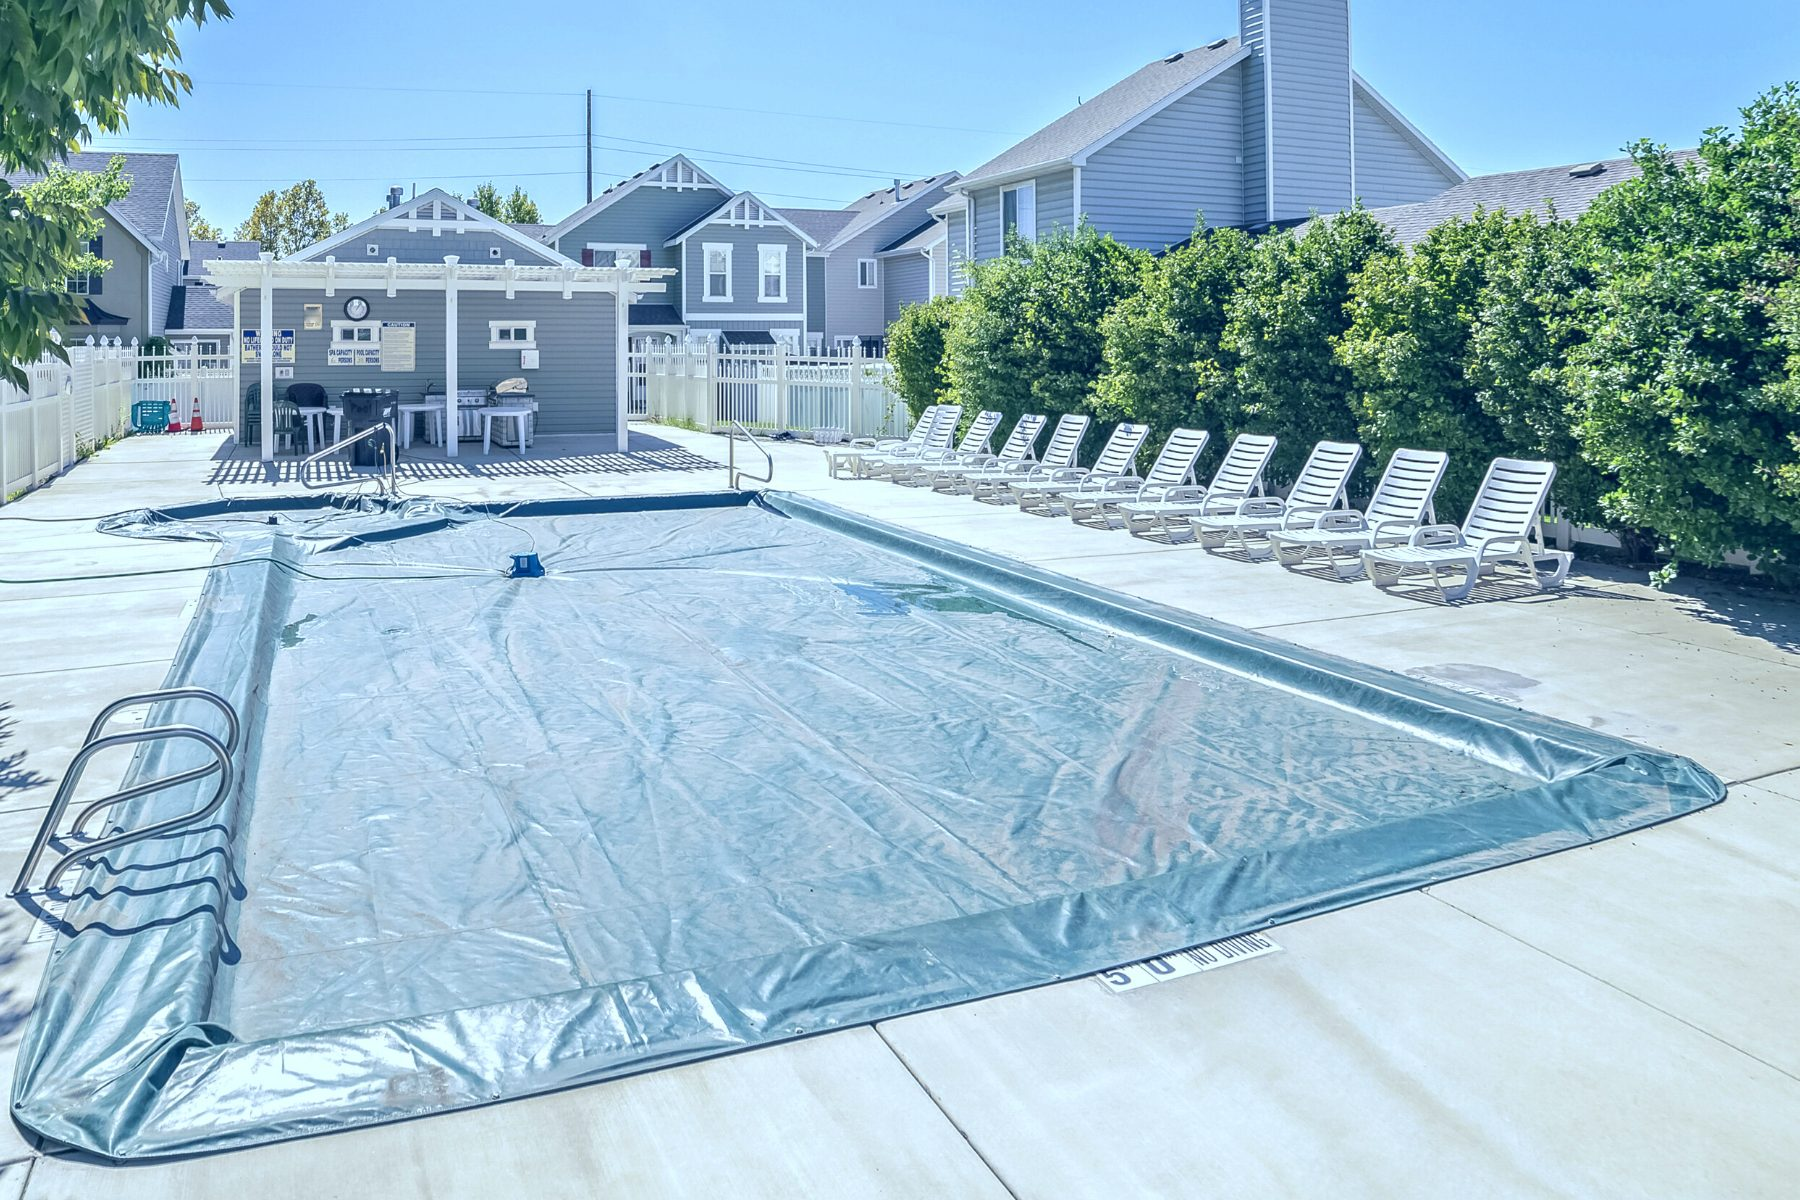 Should I Close My Pool for Winter?